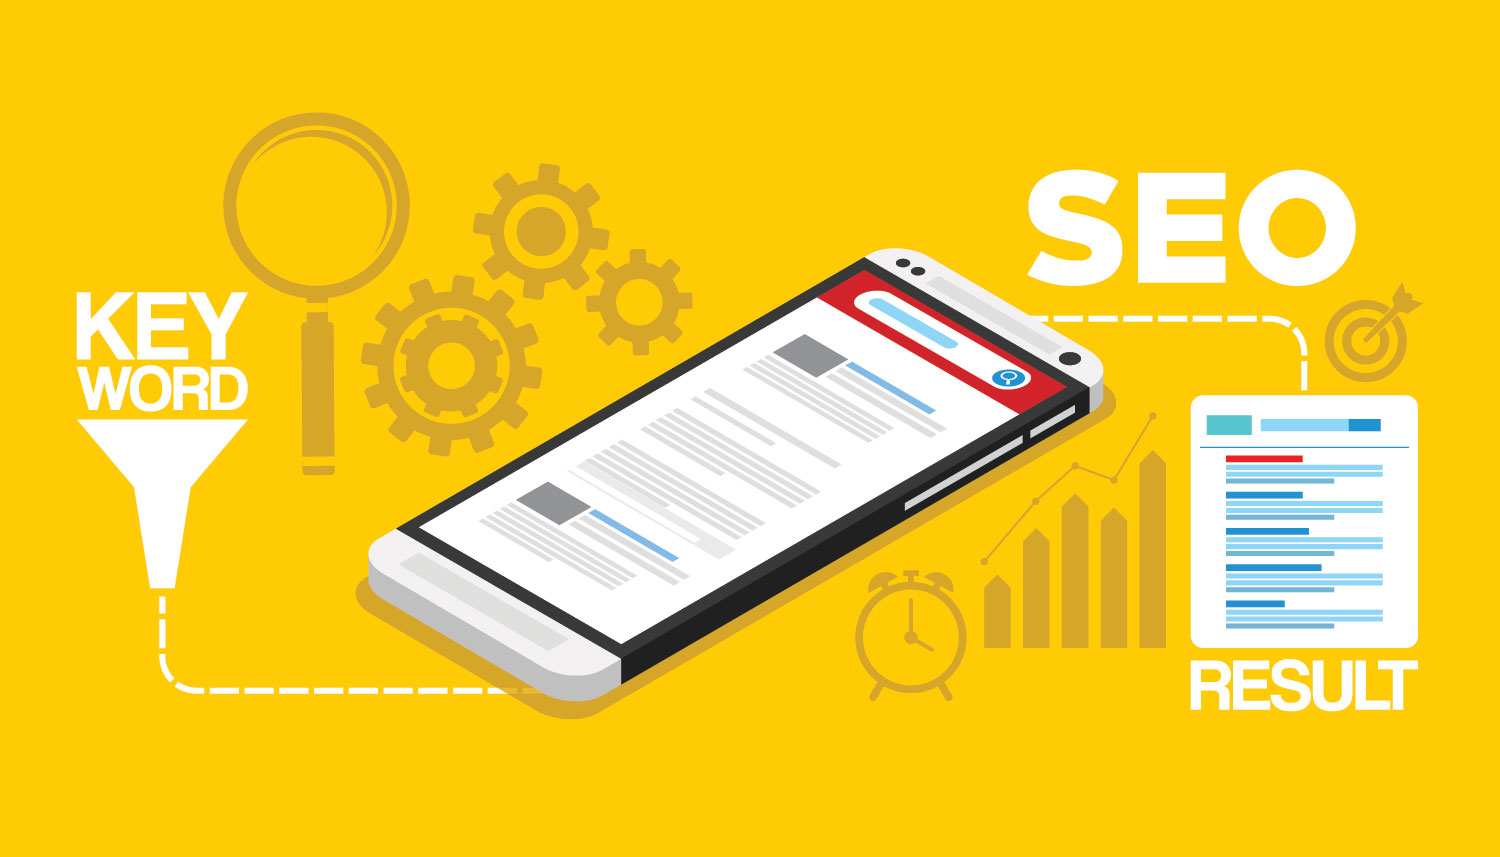 Search Engine Optimization Services Graphic of a phone and charts